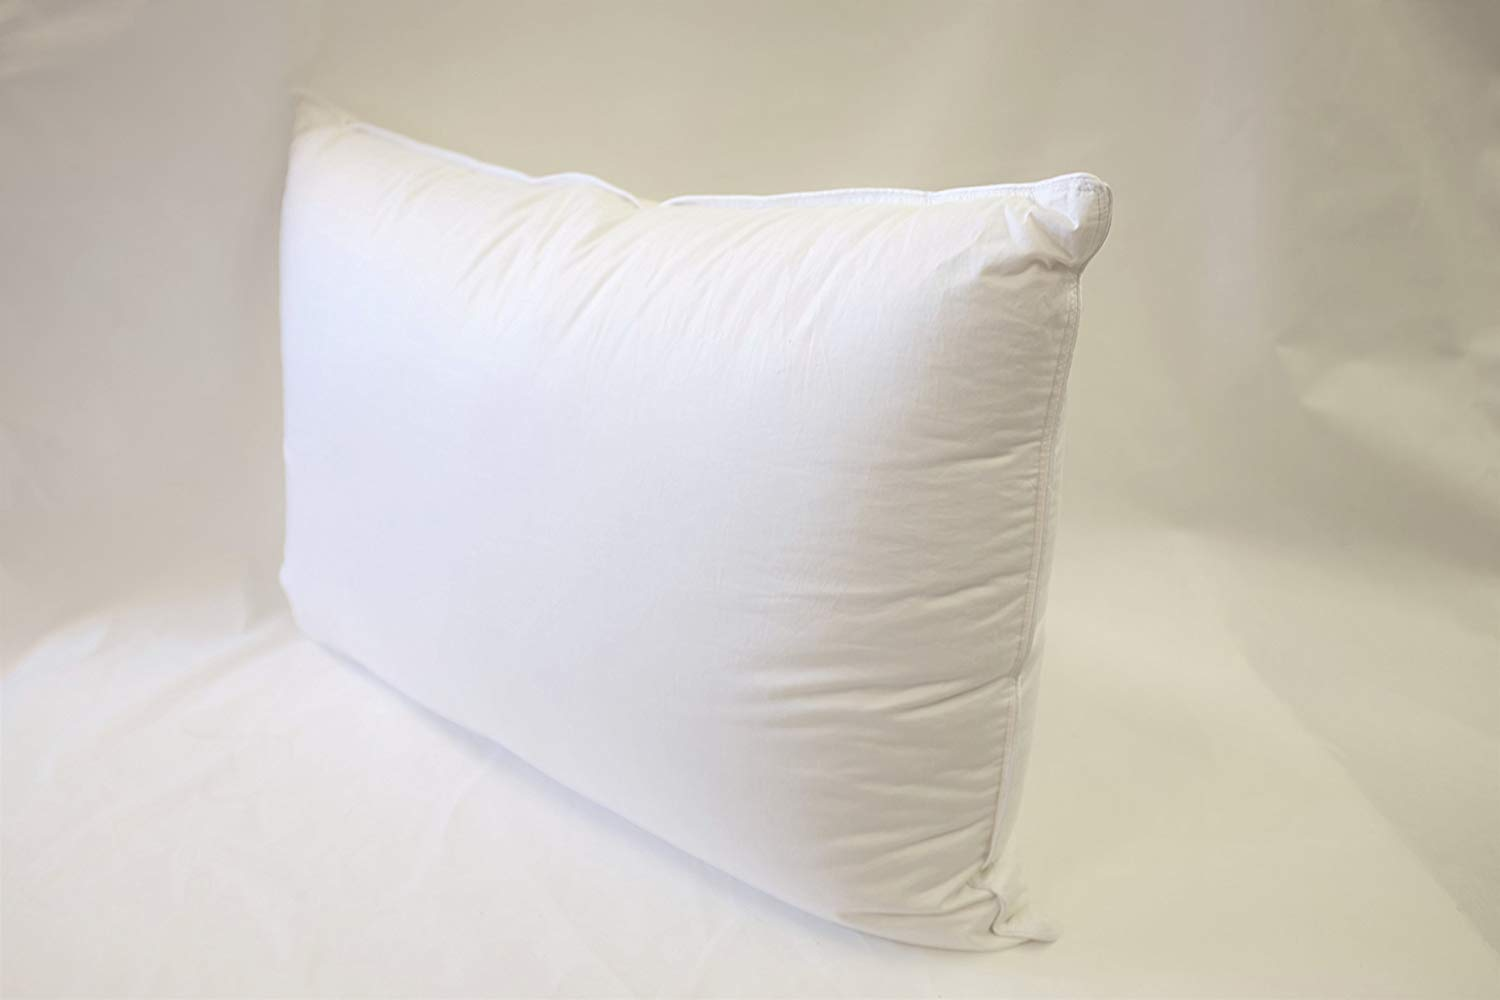 East Coast Bedding Most Comfortable Pillow Review by www.snoremagazine.com